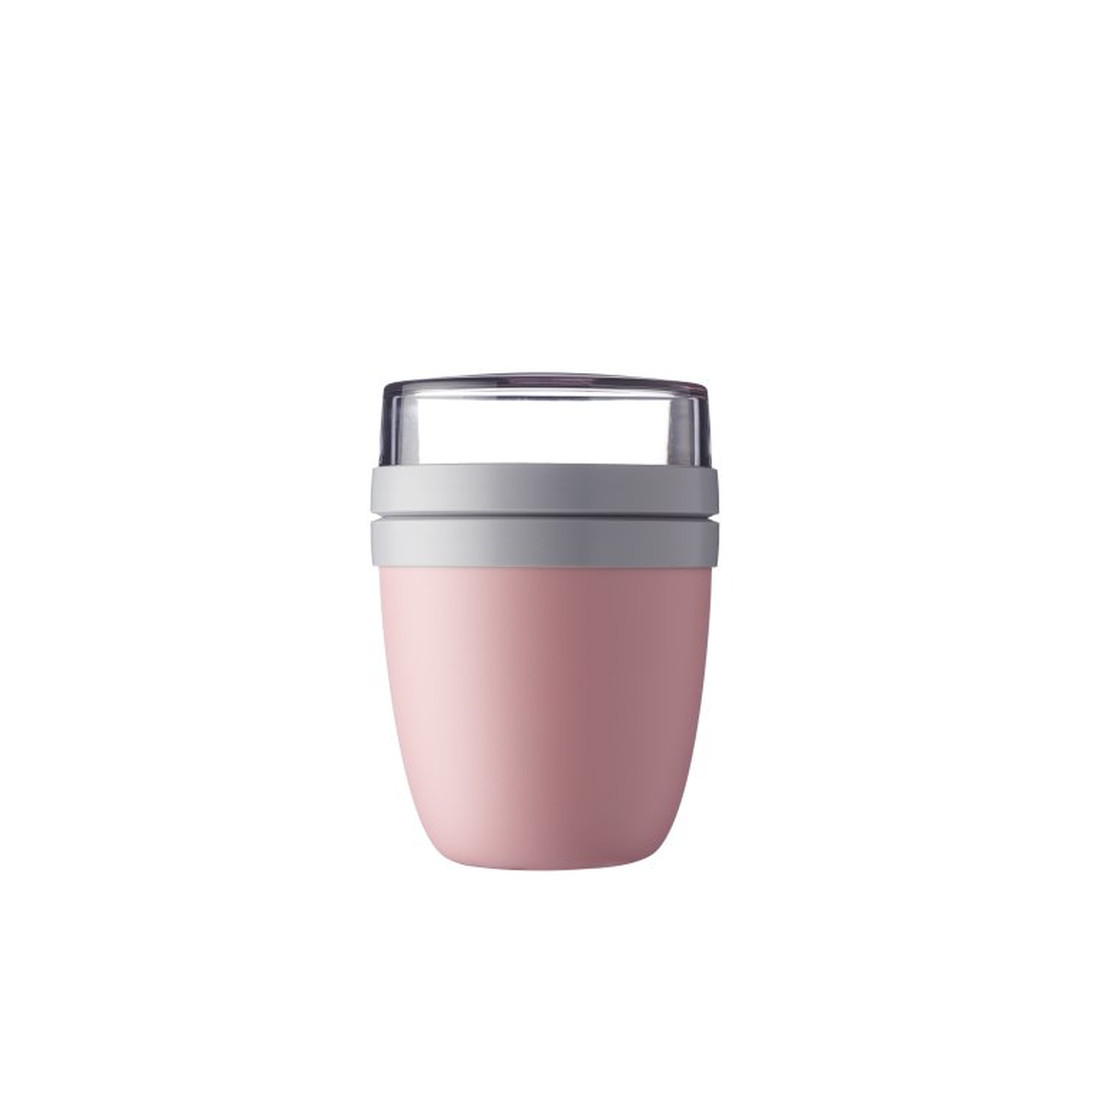 Lunchpot Ellipse - Nordic Pink by MEPAL